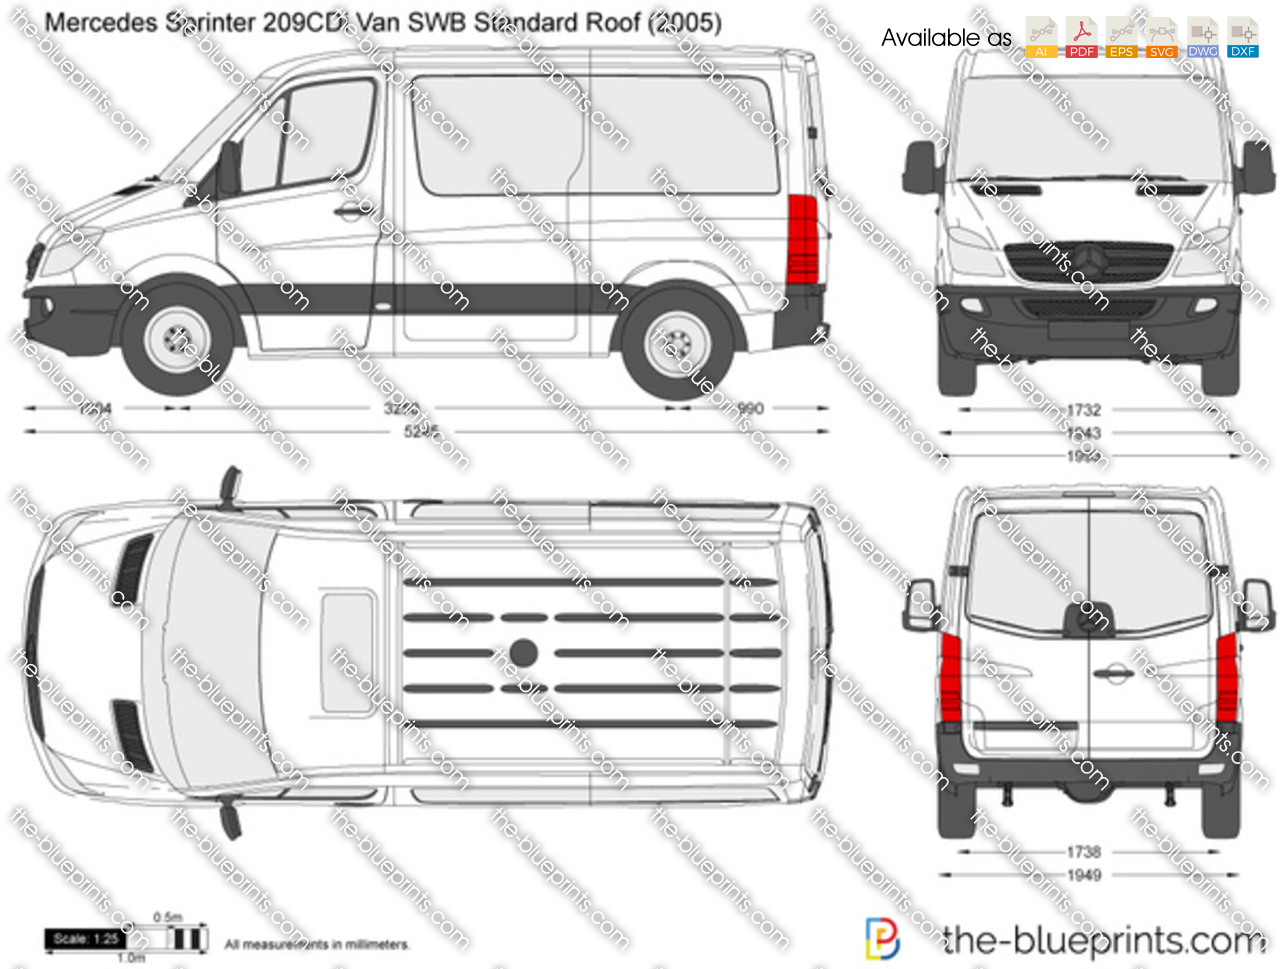 445082375654954618 together with Kolorowanka z mercedesem 0986 Online moreover 98 Ford Expedition Fuse Box Diagram besides 19548 furthermore Mercedes Benz Announces Season Ii Of The Young Star Driver Programme 496804. on mercedes benz e class